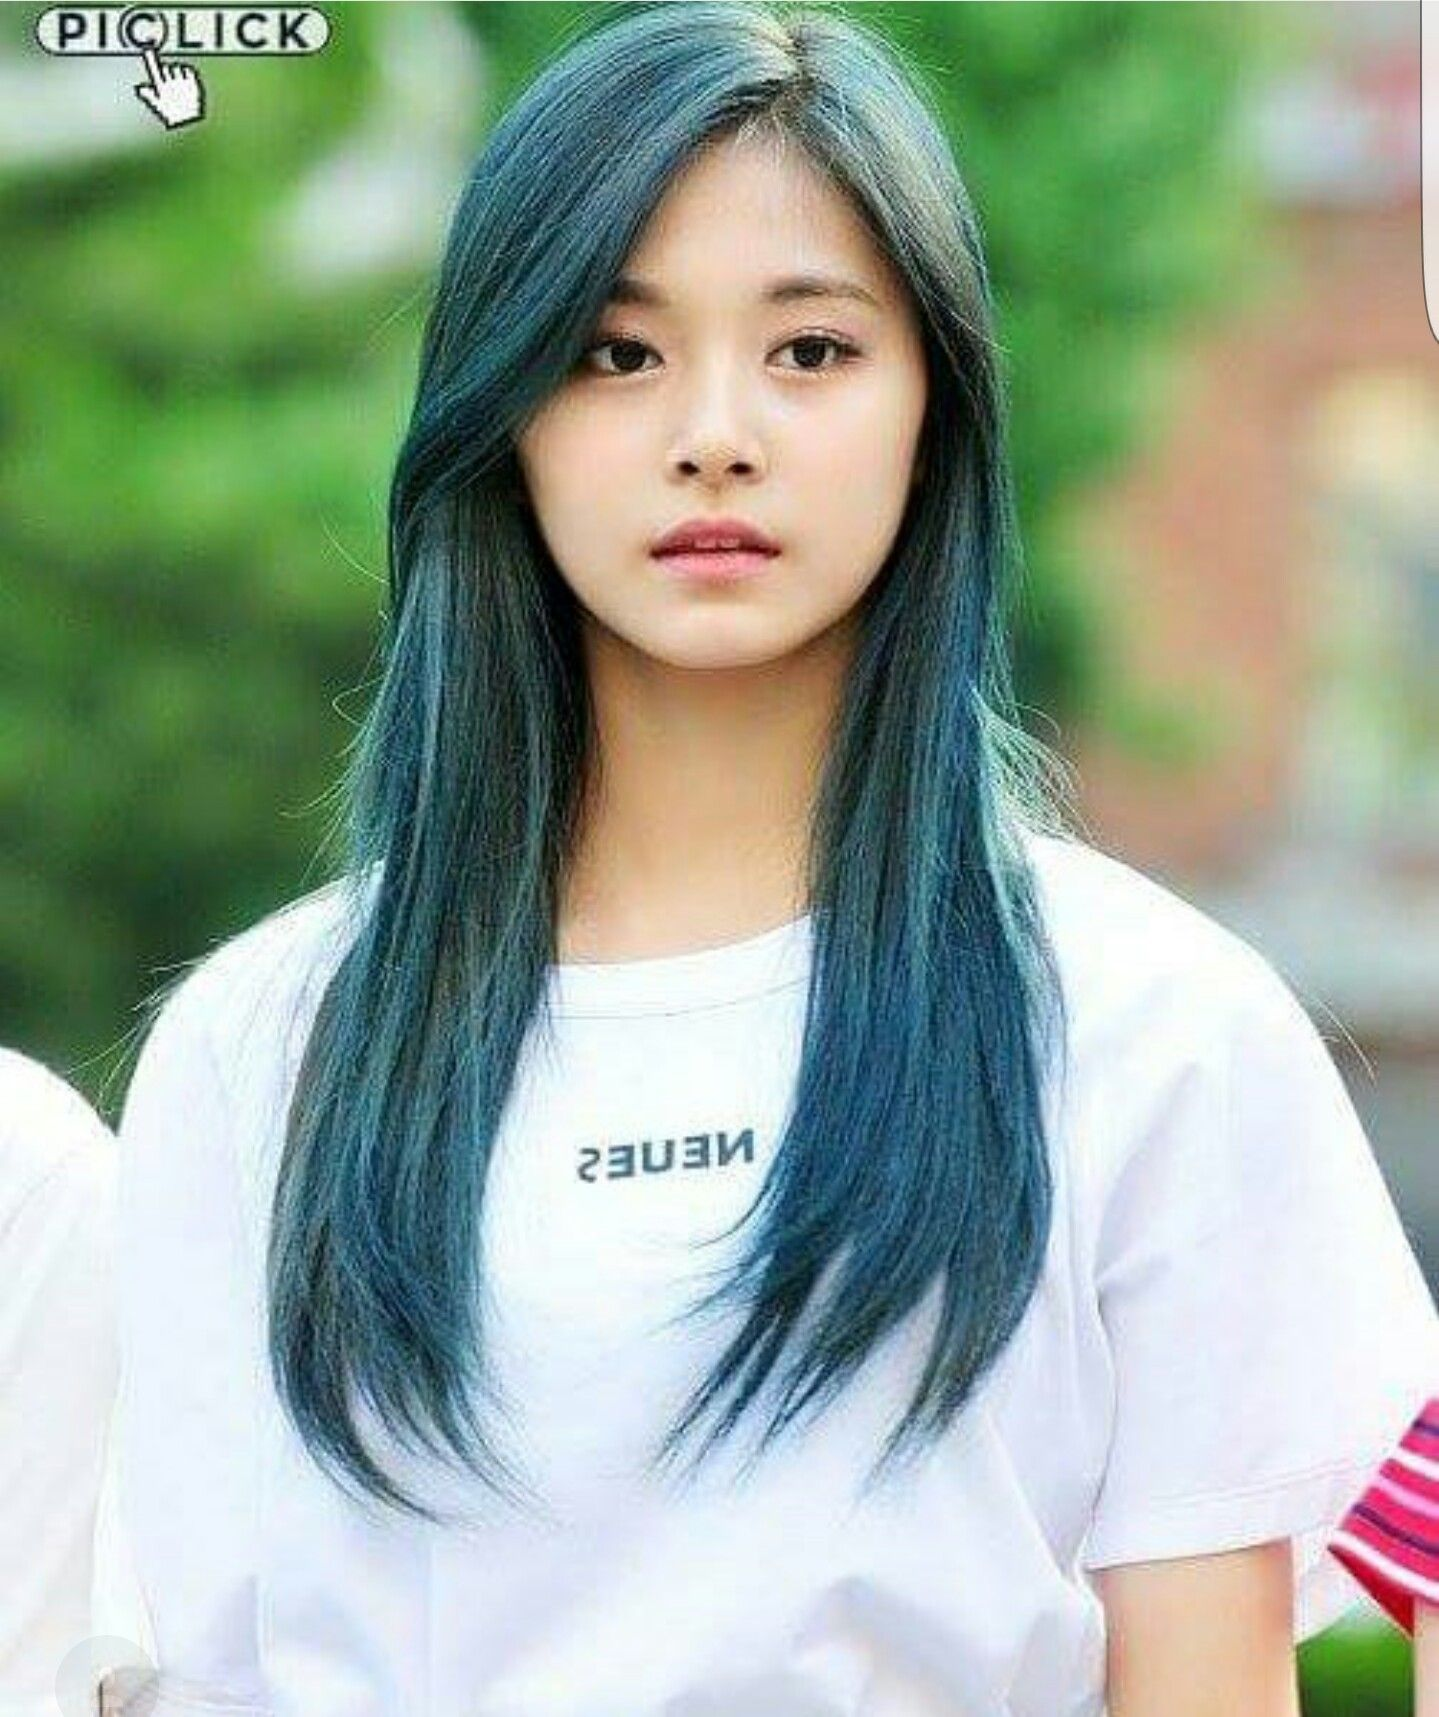 Twice Tzuyu Beauty Pinterest Blue Hair